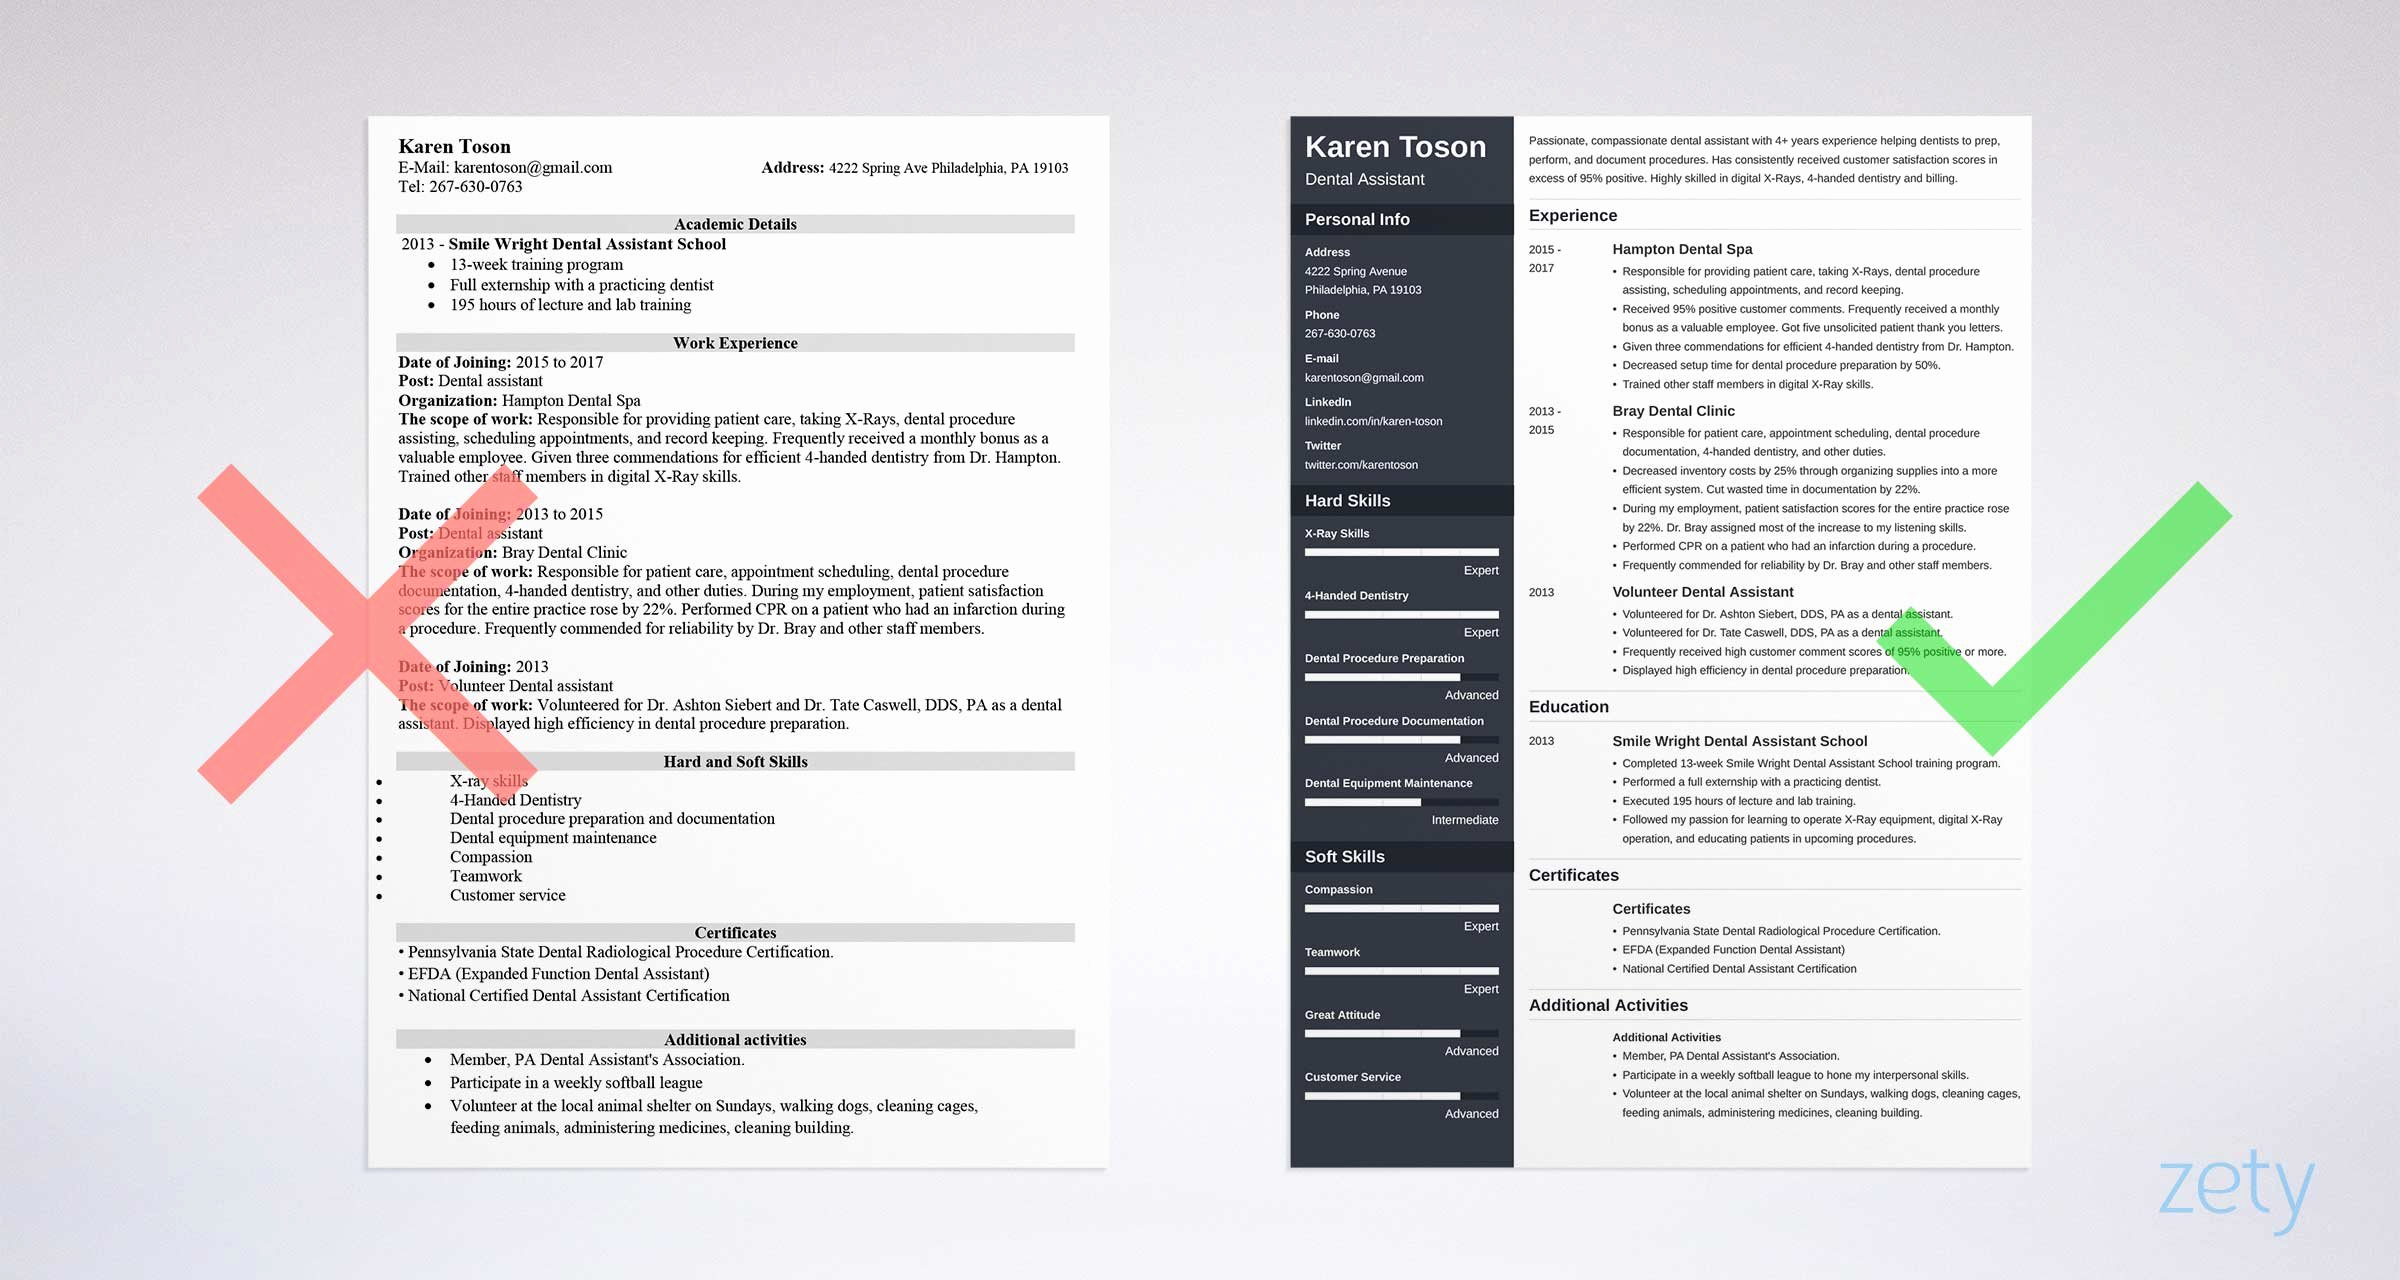 One Page Resume Examples Inspirational E Page Resume Templates 15 Examples to Download and Use now